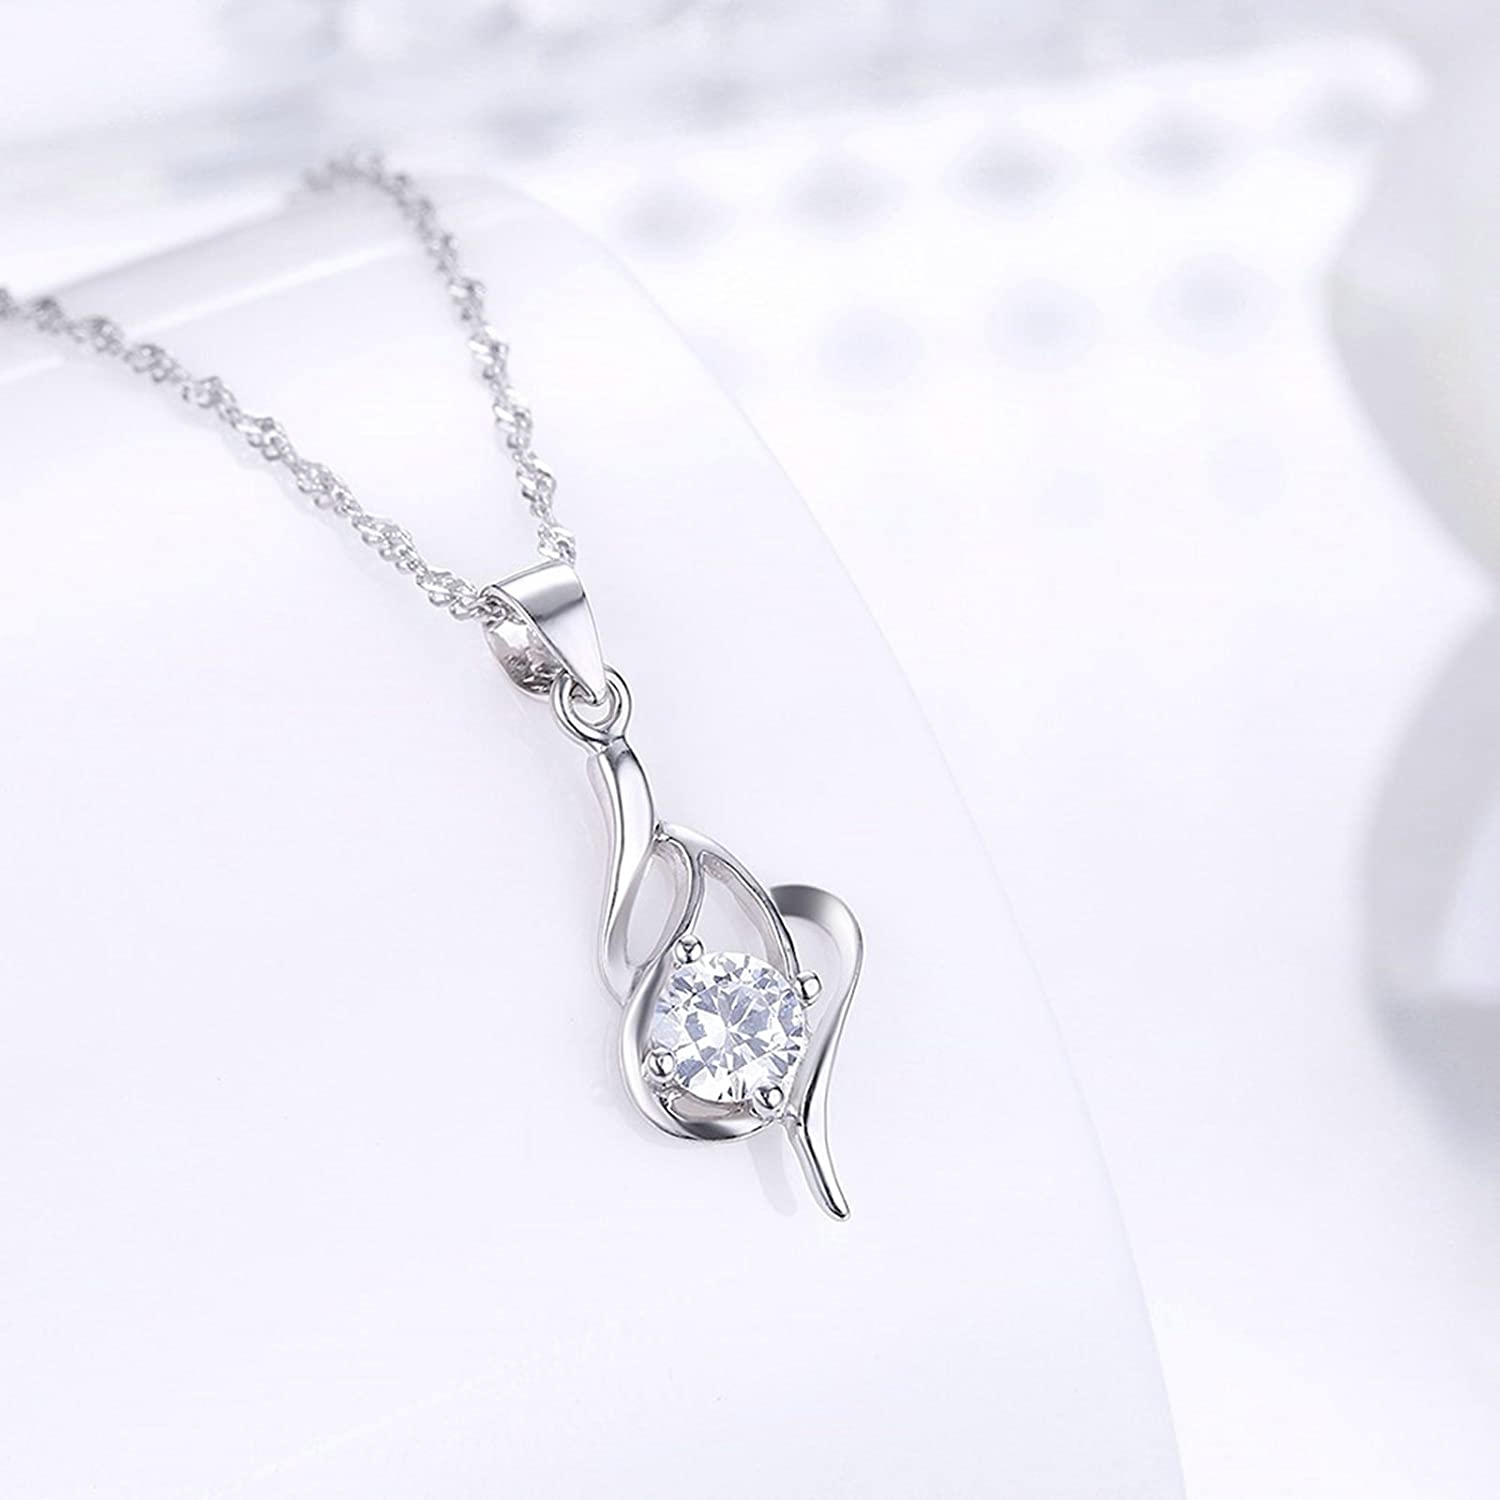 MoAndy Jewelry Sterling Silver Women Necklace Chain Hollow Prism White Length 40+5CM